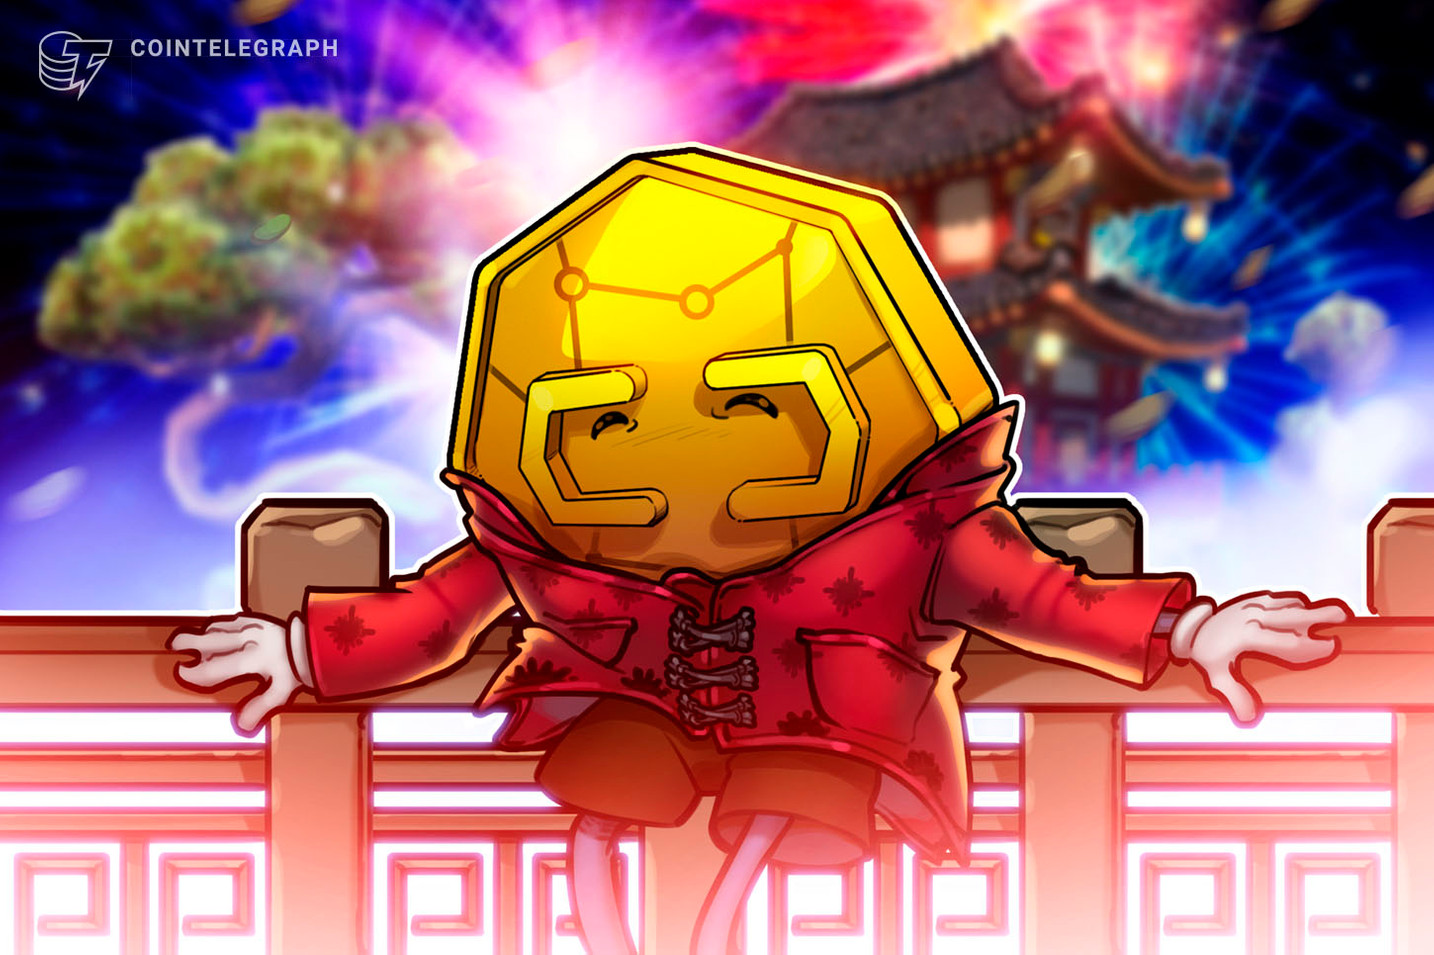 Chinese Central Bank 'Crypto' Not Launching in November: State Media